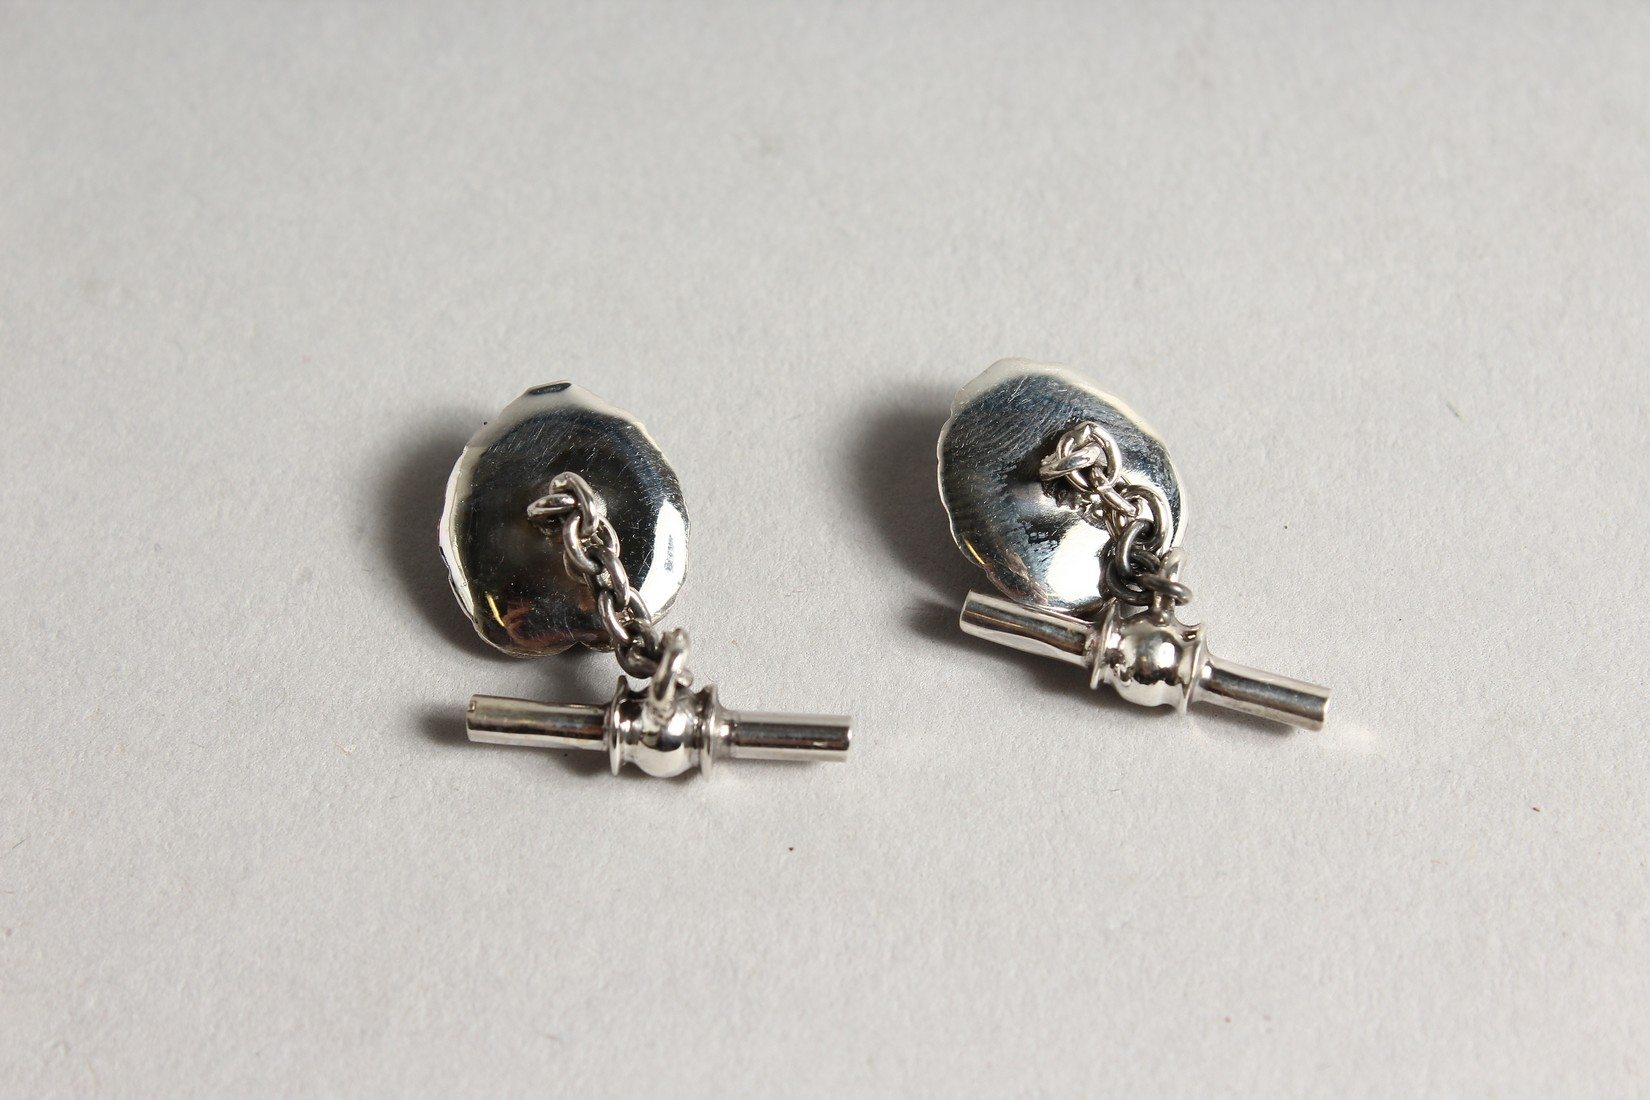 A PAIR OF SILVER FROG AND LILY PAD CUFF LINKS - Image 3 of 3